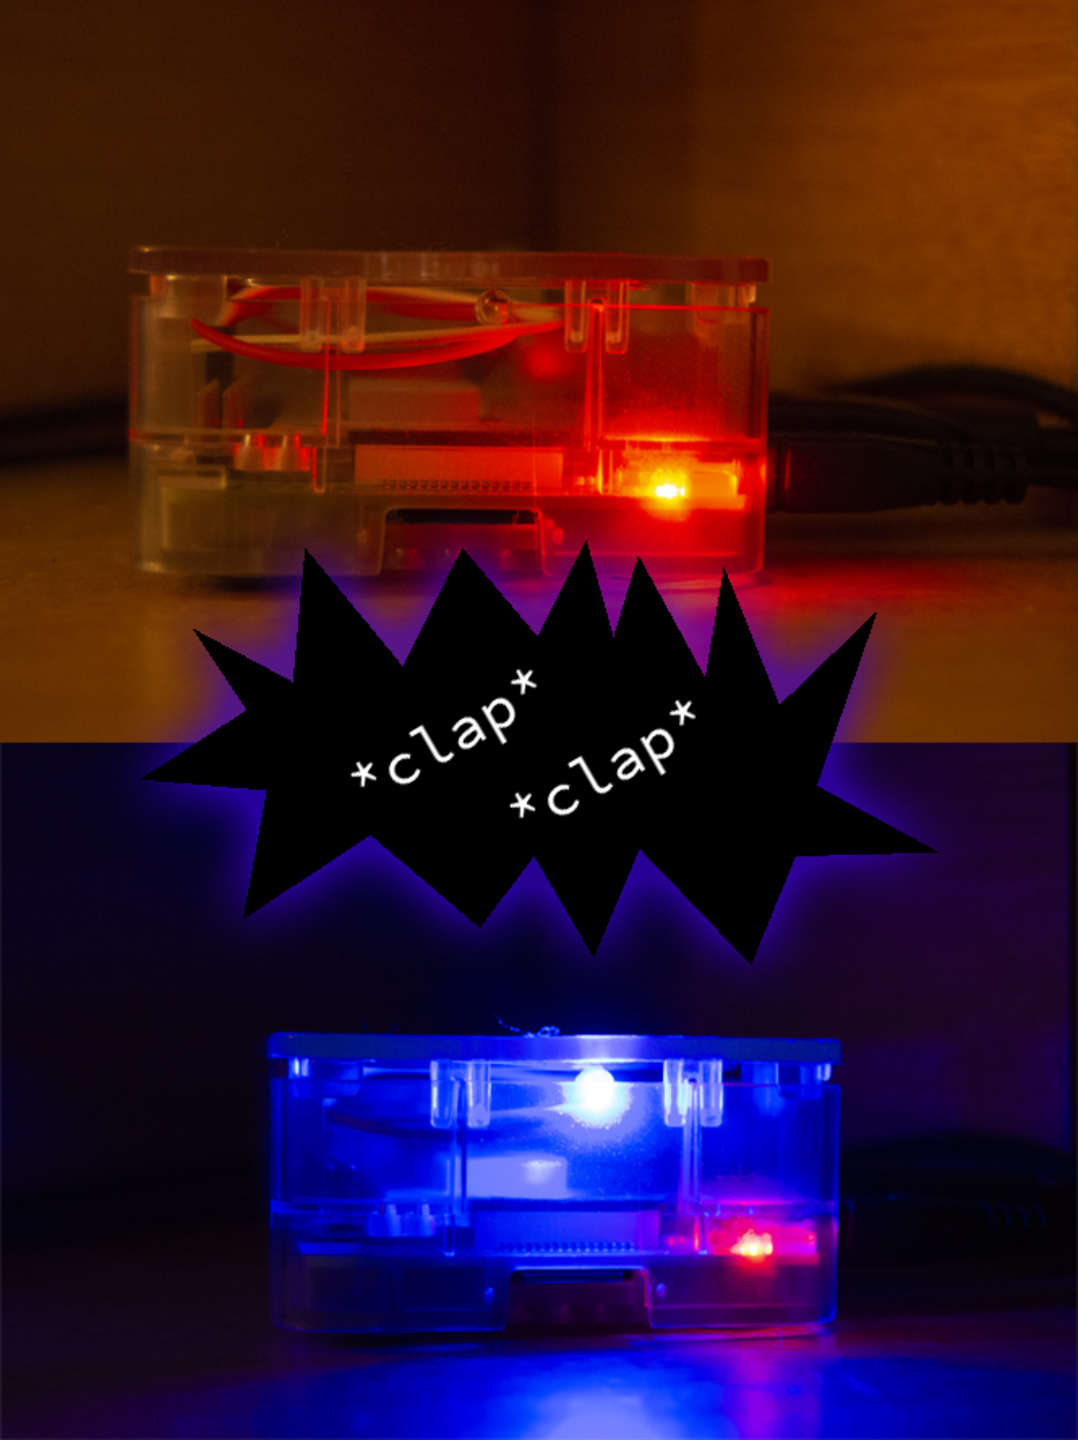 Raspberry Pi Clapper LED colors